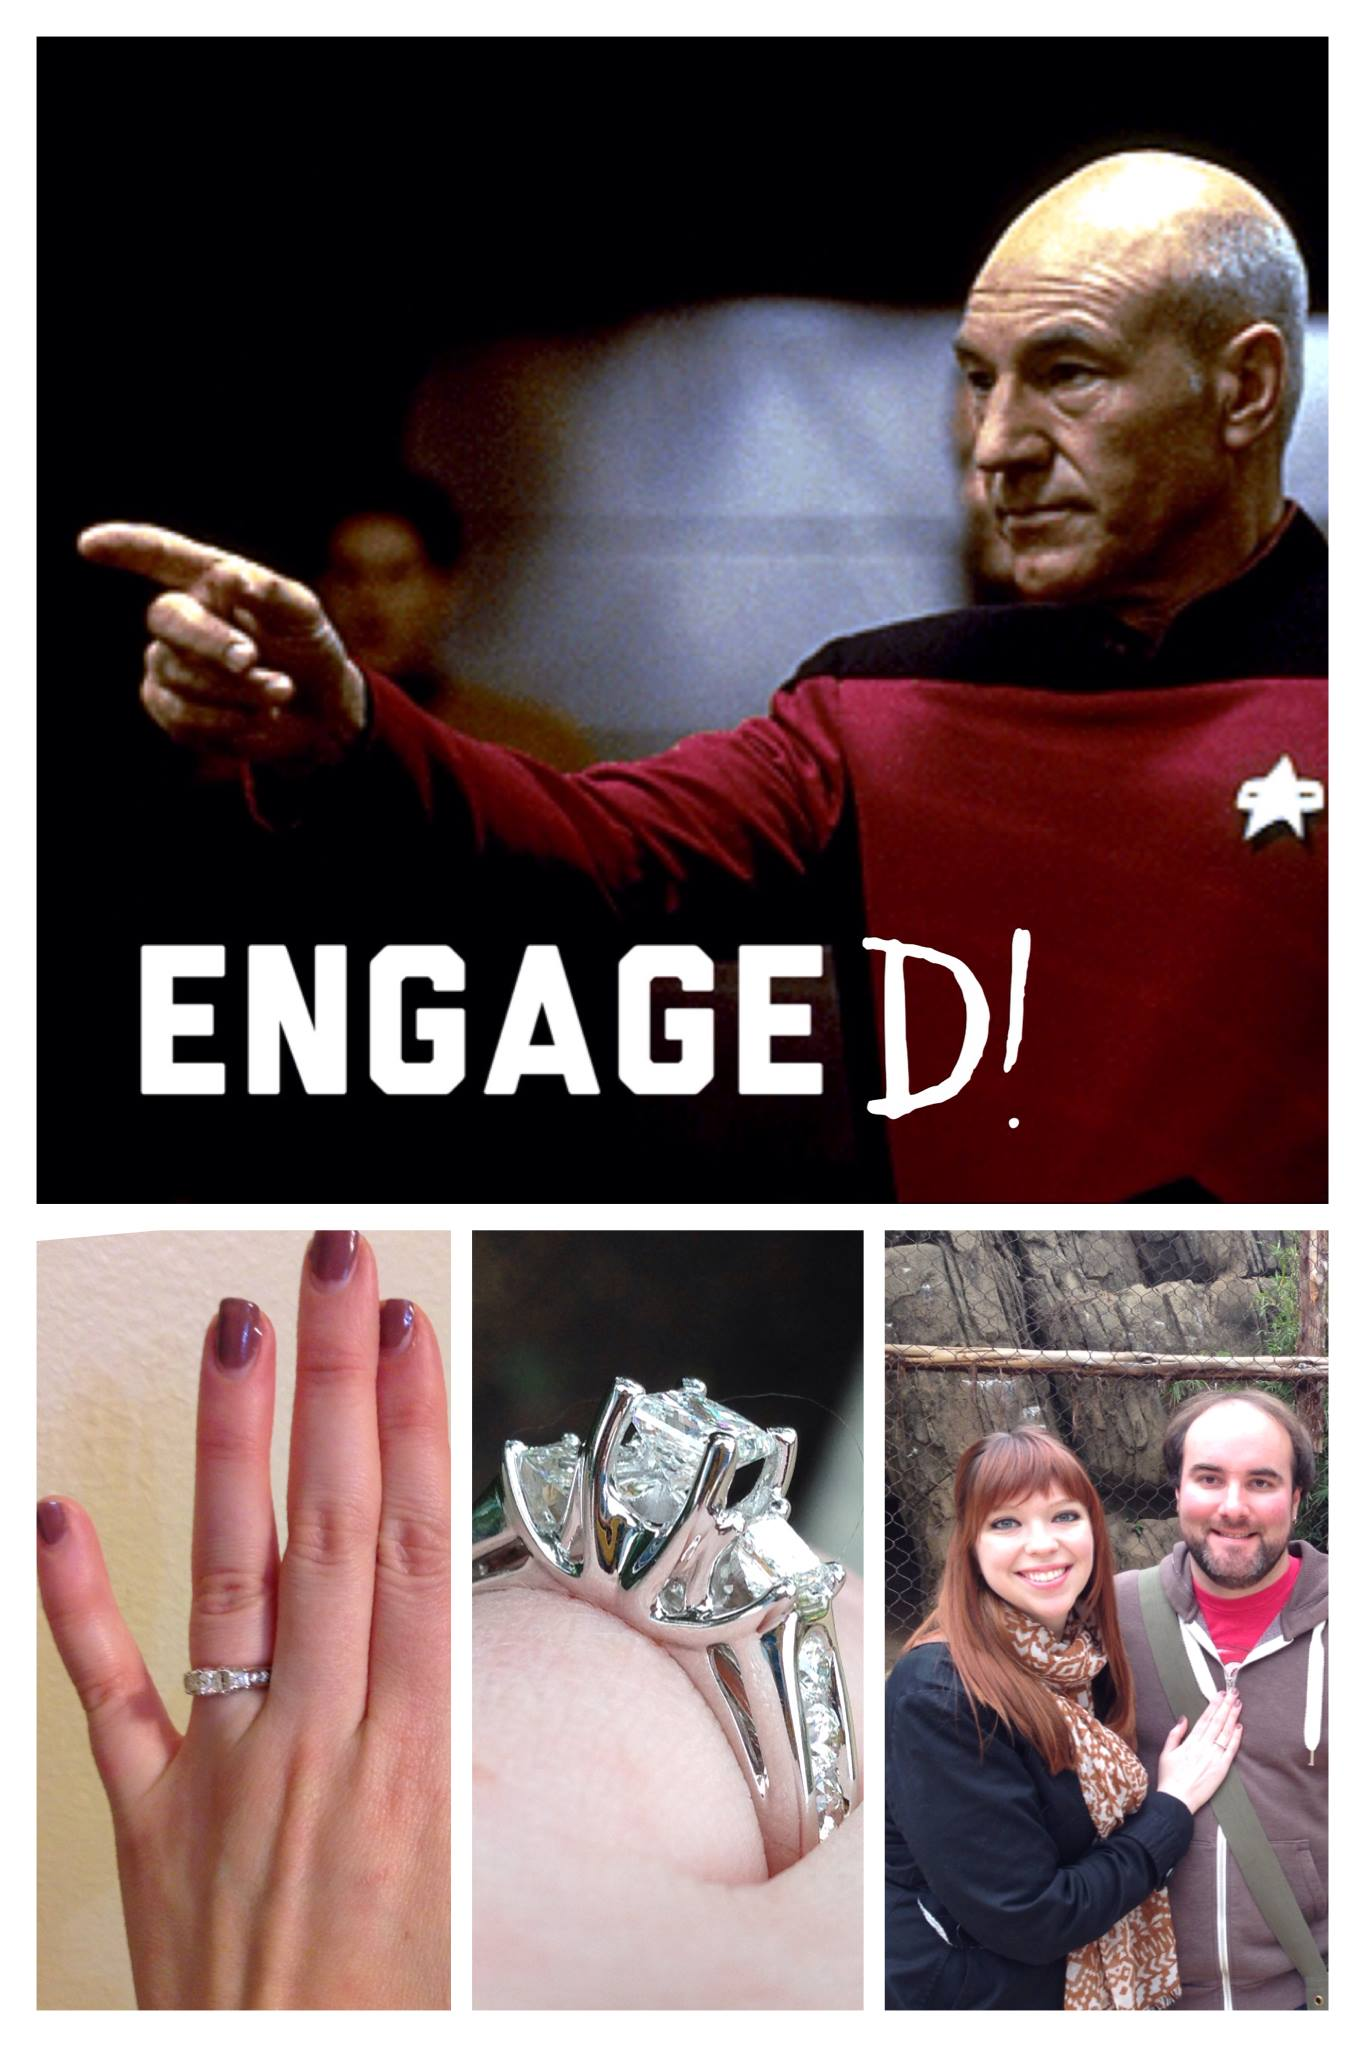 Star Trek Next Generation Engagement Announcement